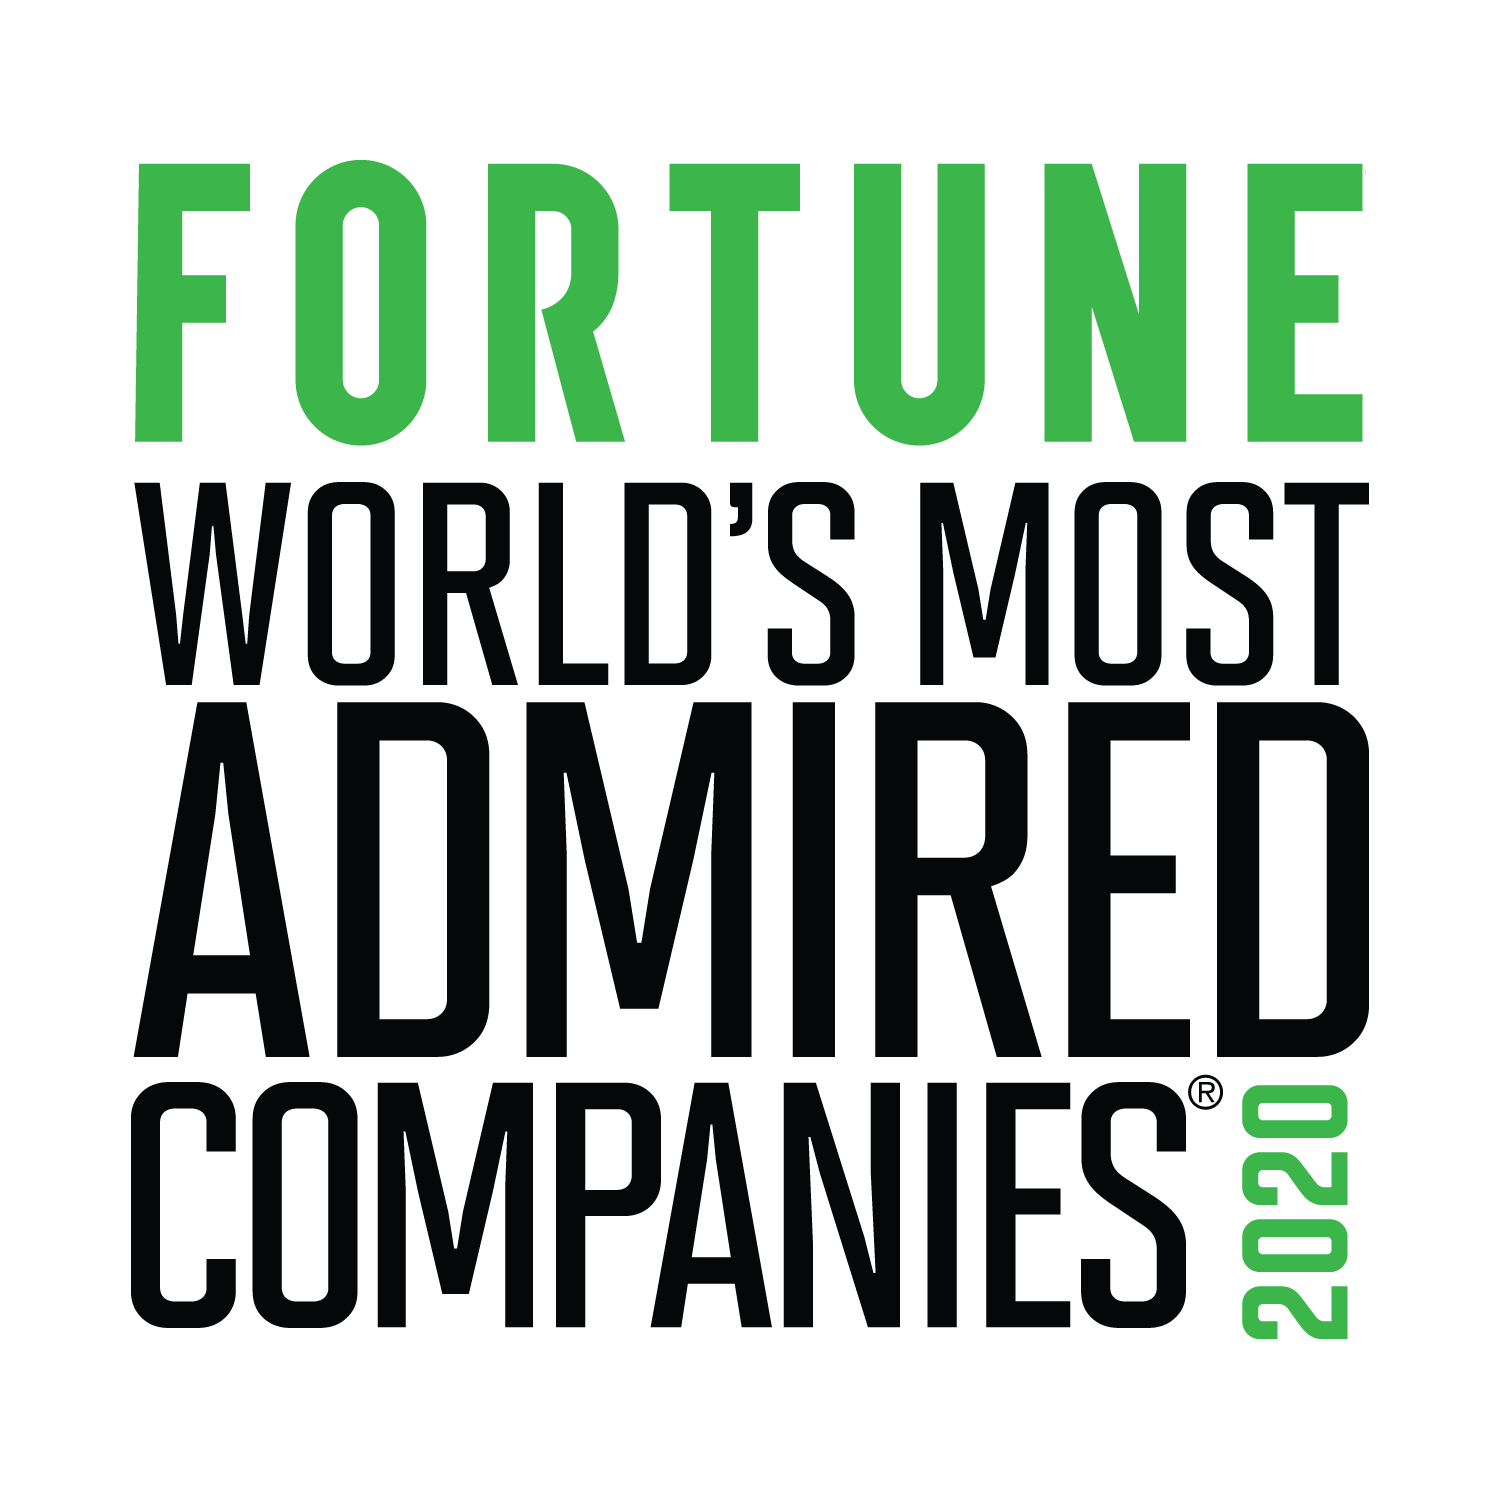 Fortune's World's Most Admired Companies, 2020